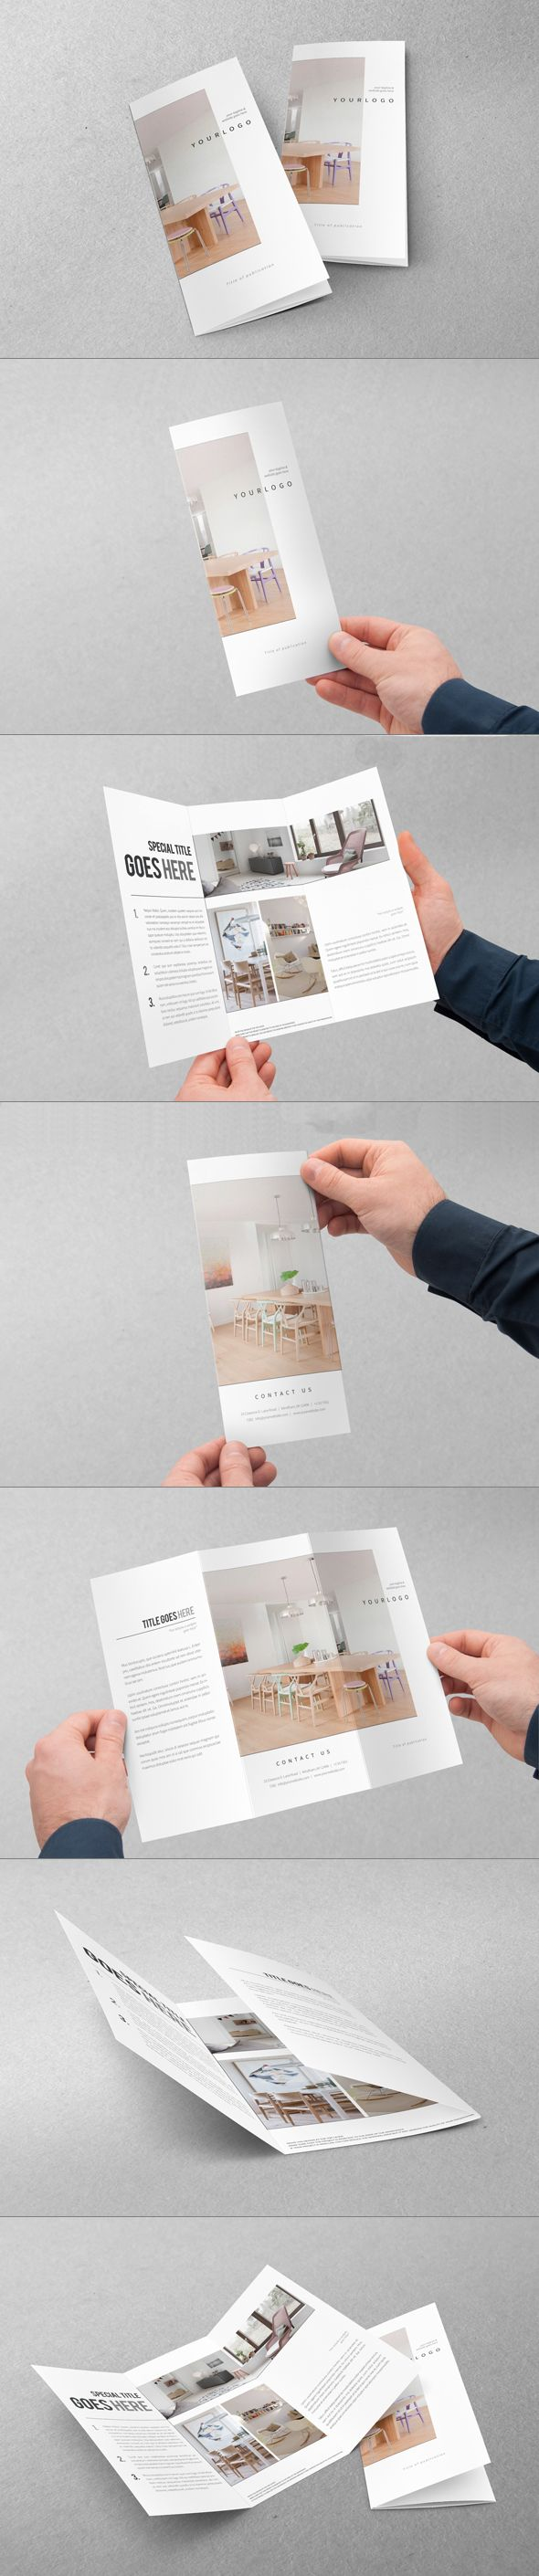 Brochure - Design - Intérieur - Simple